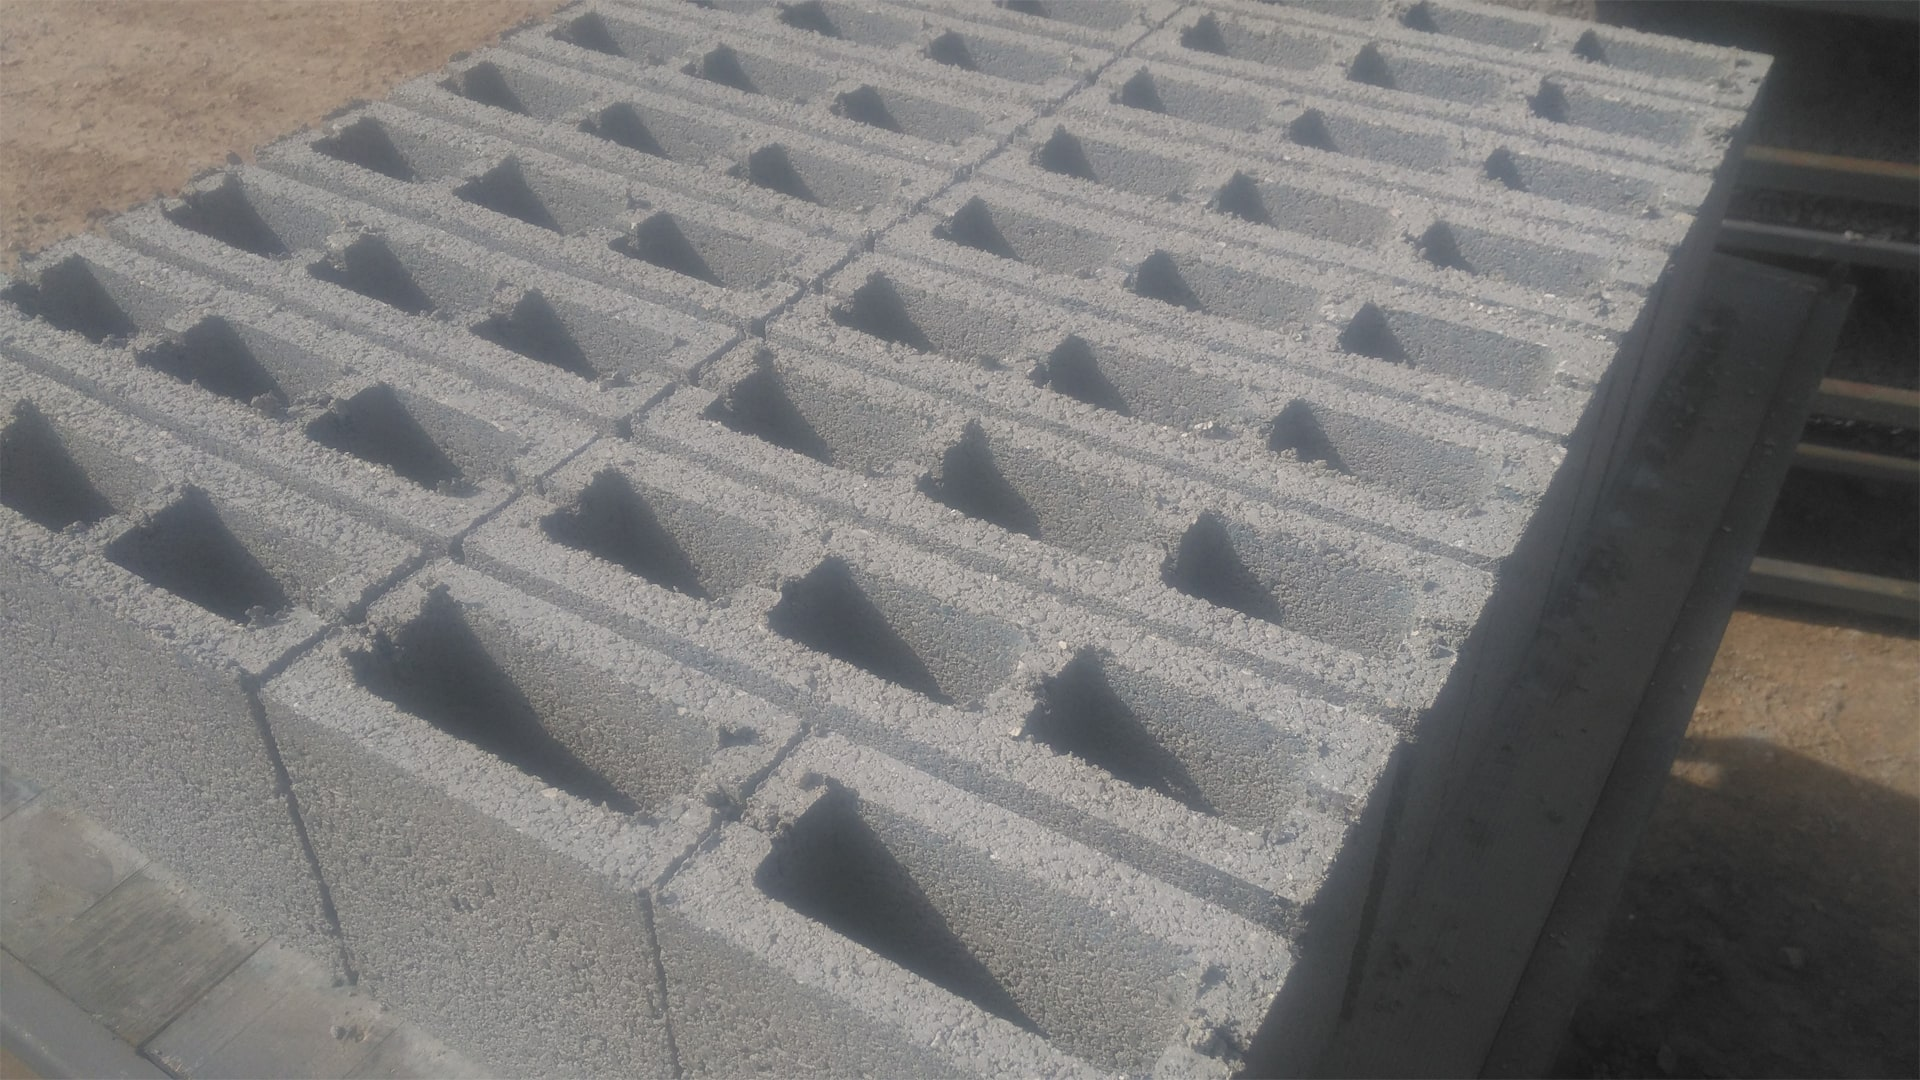 Concrete-Ready-Hollow-Blocks.jpg